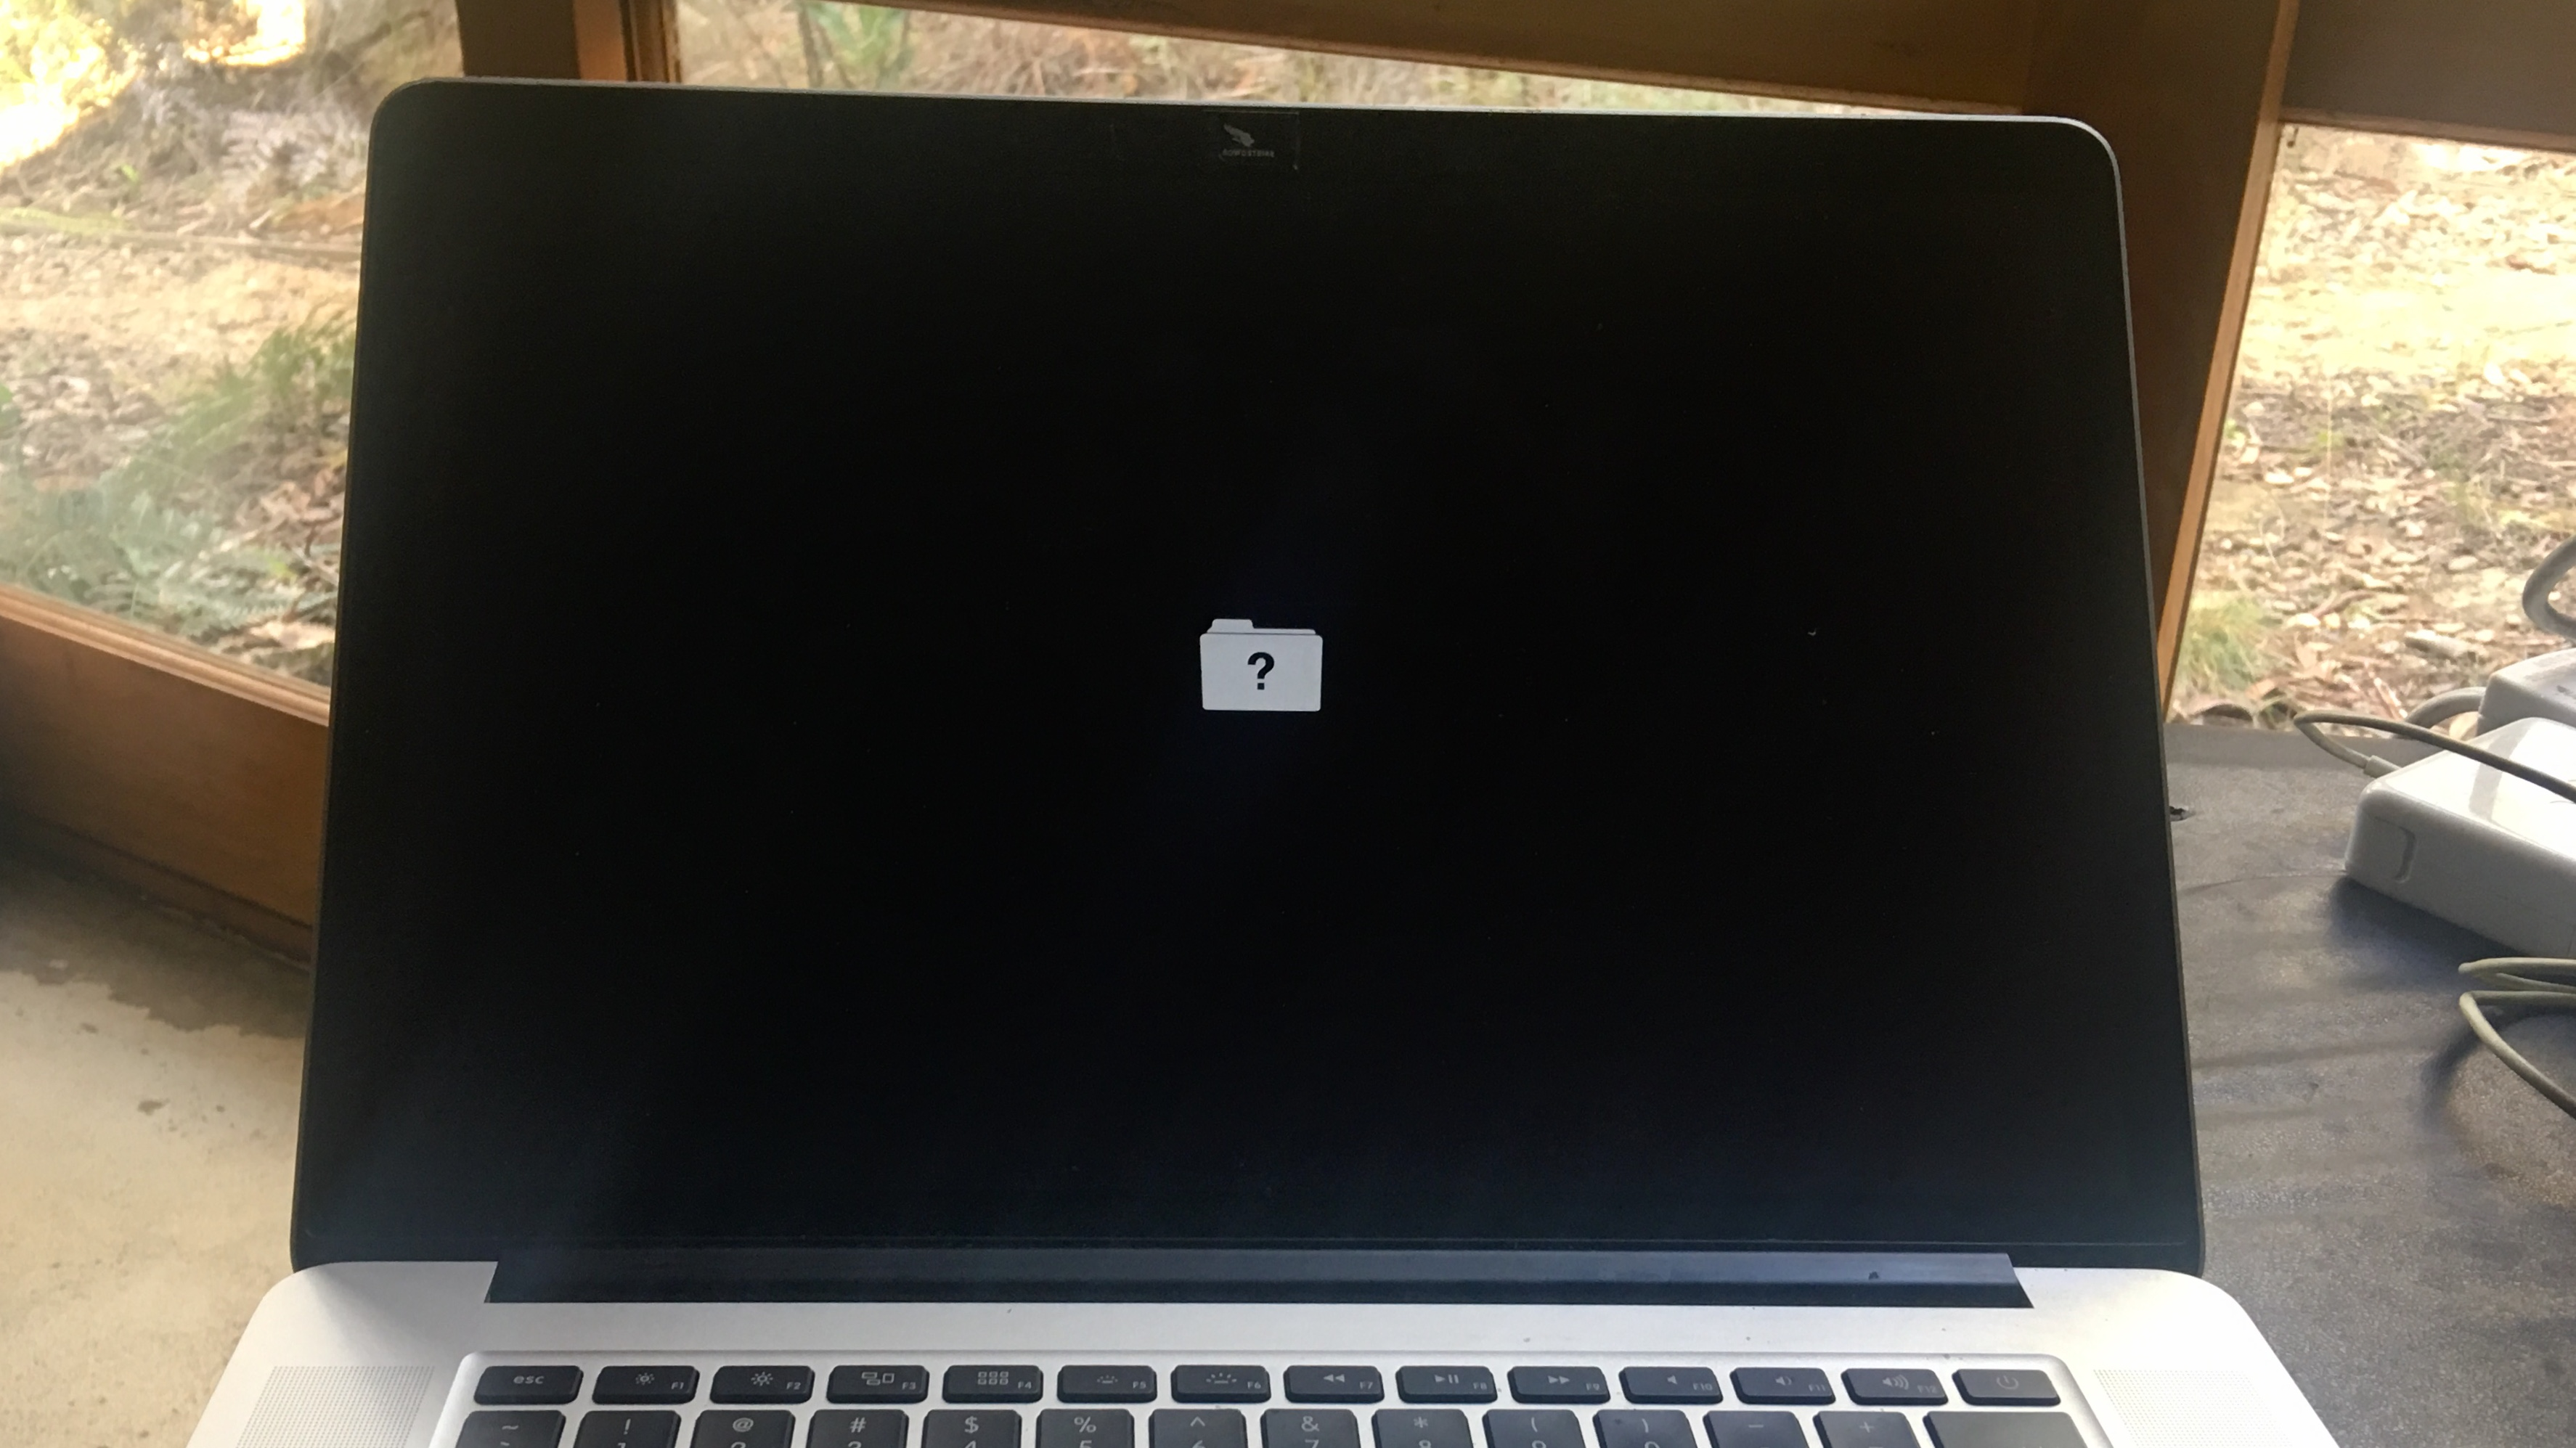 Dead macOS screen